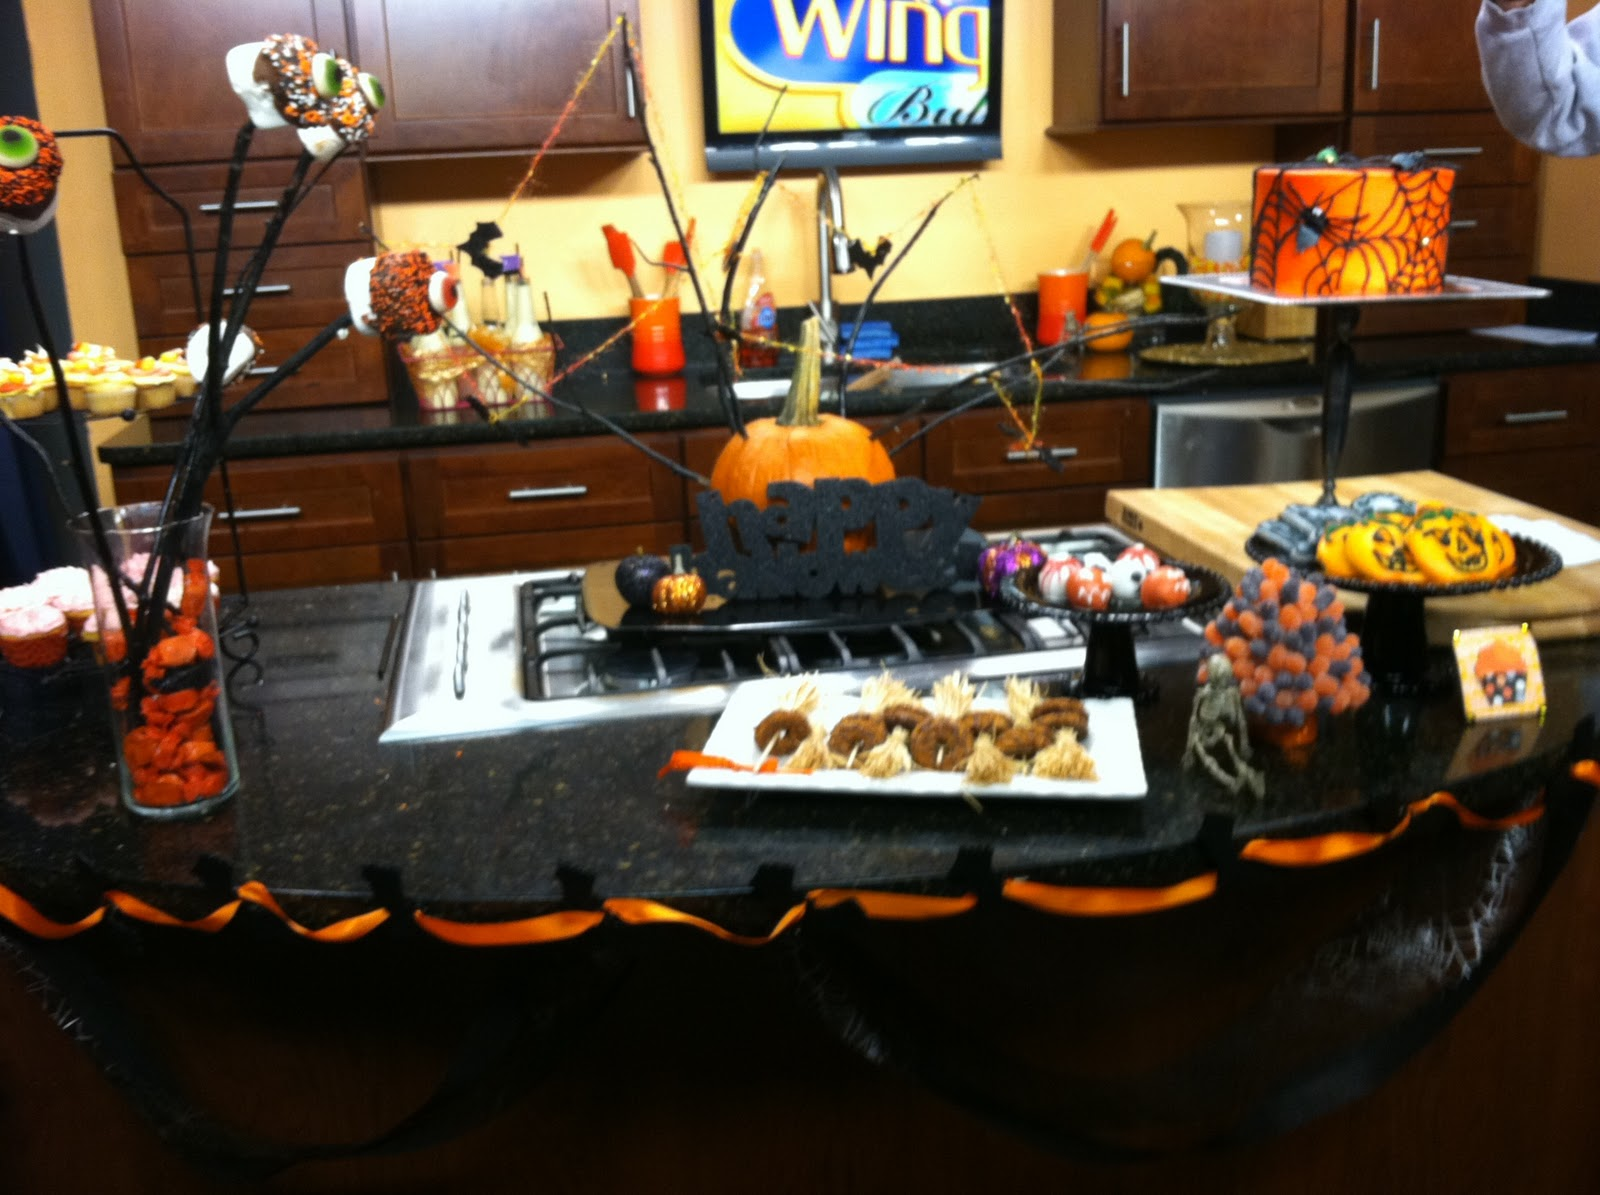 Halloween food table decorations - Halloween Dessert Tables Are The Best Of Both Worlds Today We Made Trick Or Treat Cupcakes On Cw23 S Wingin It Buffalo Style